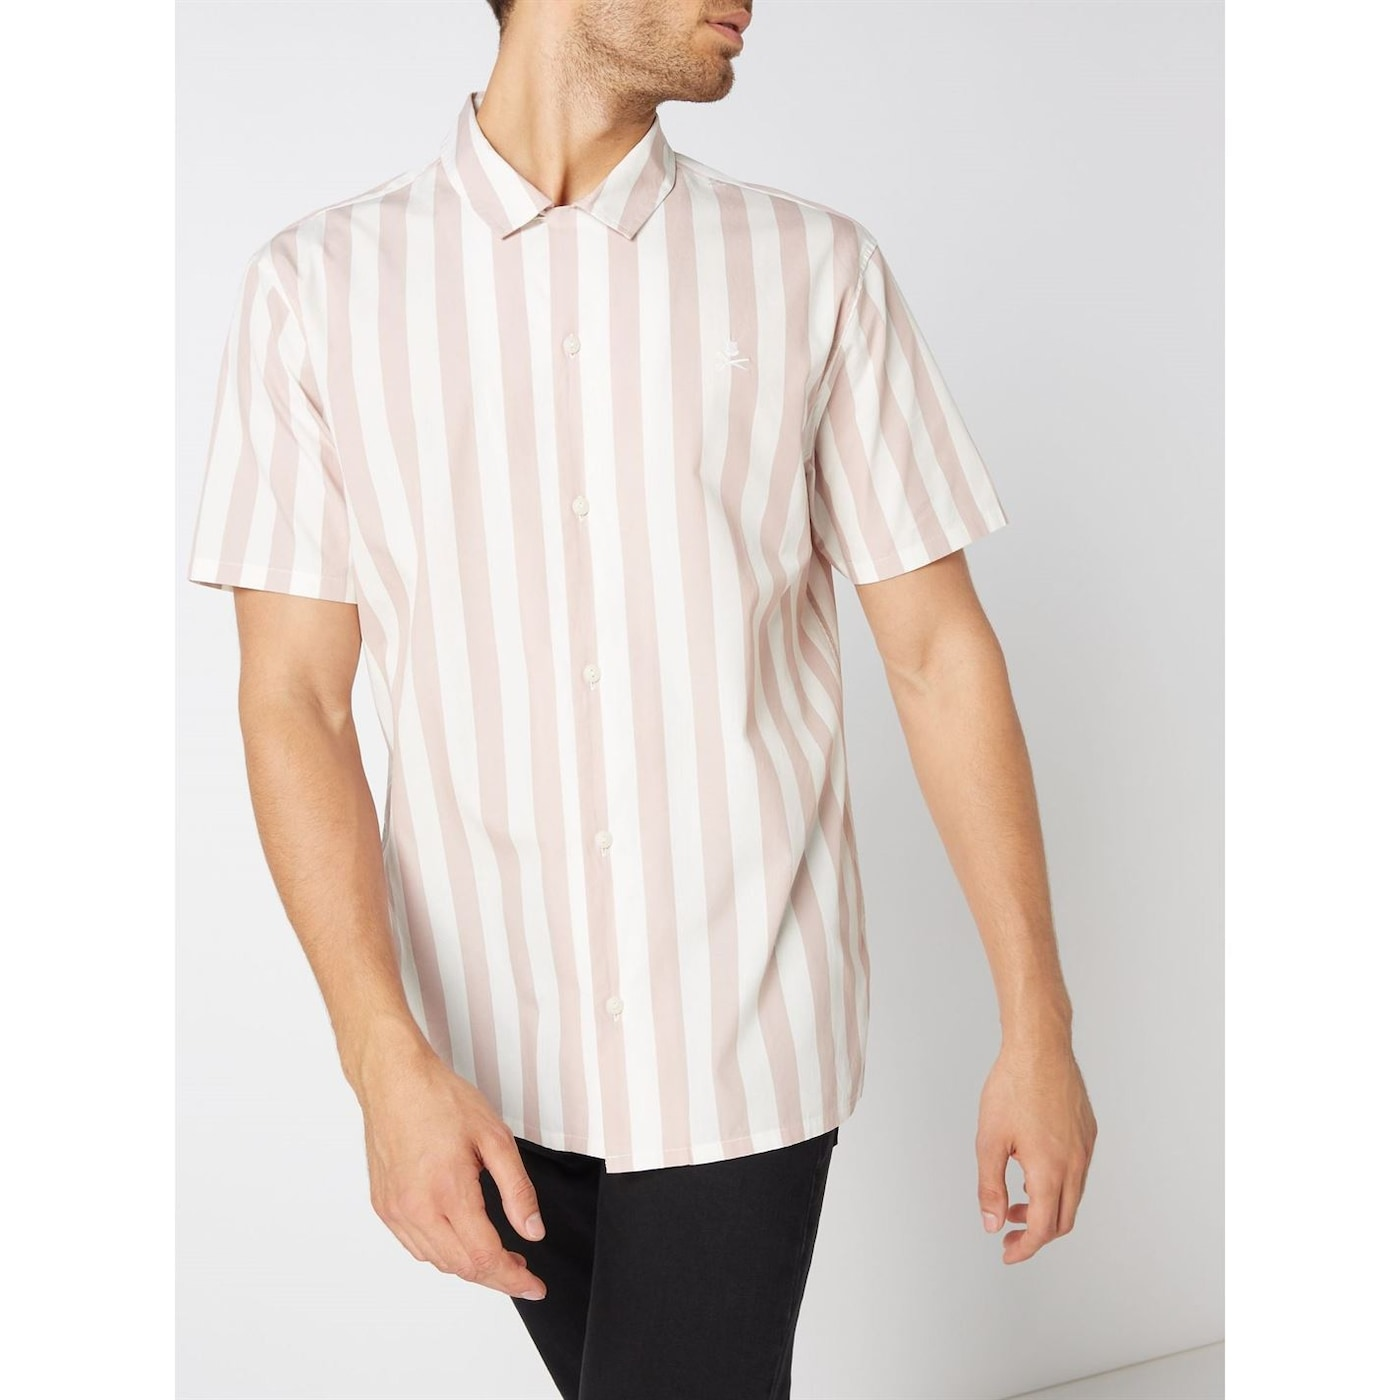 Label Lab Pisces Vertical Stripe Shirt